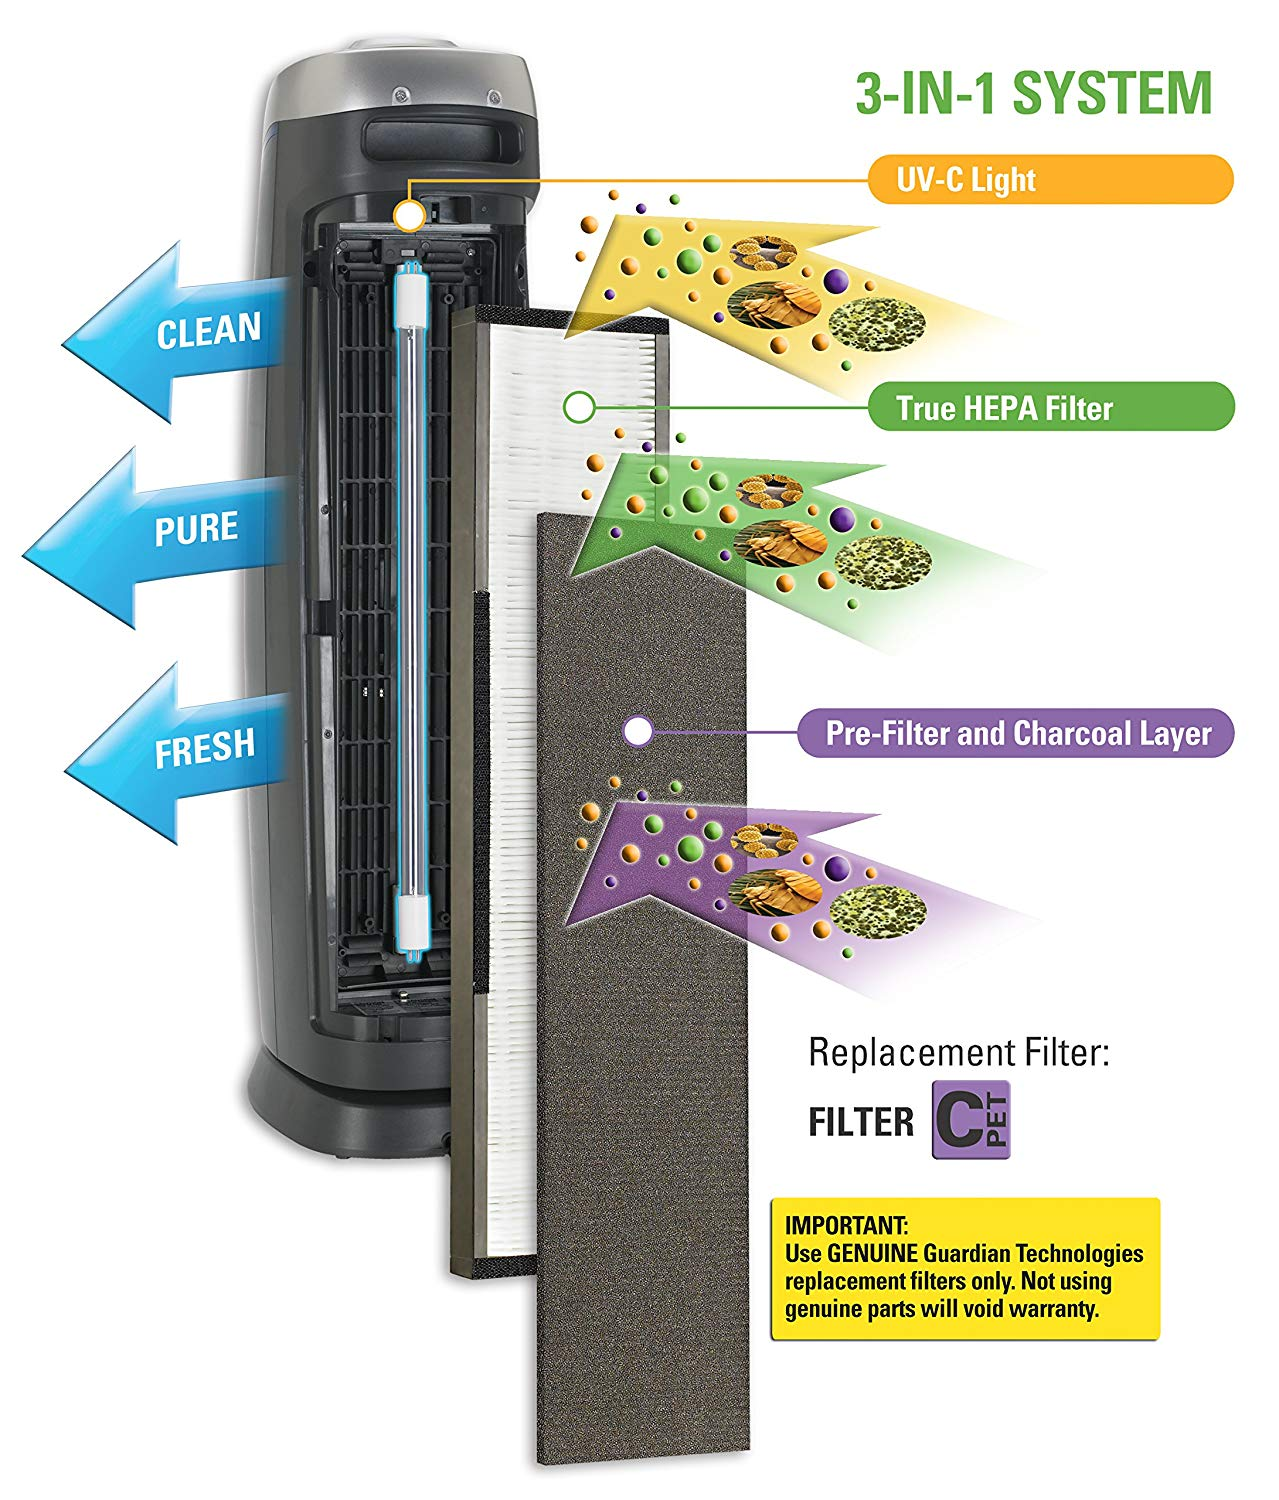 Best Air Purifier for Odor Elimination - #5 GermGuardian AC5250PT - Filters